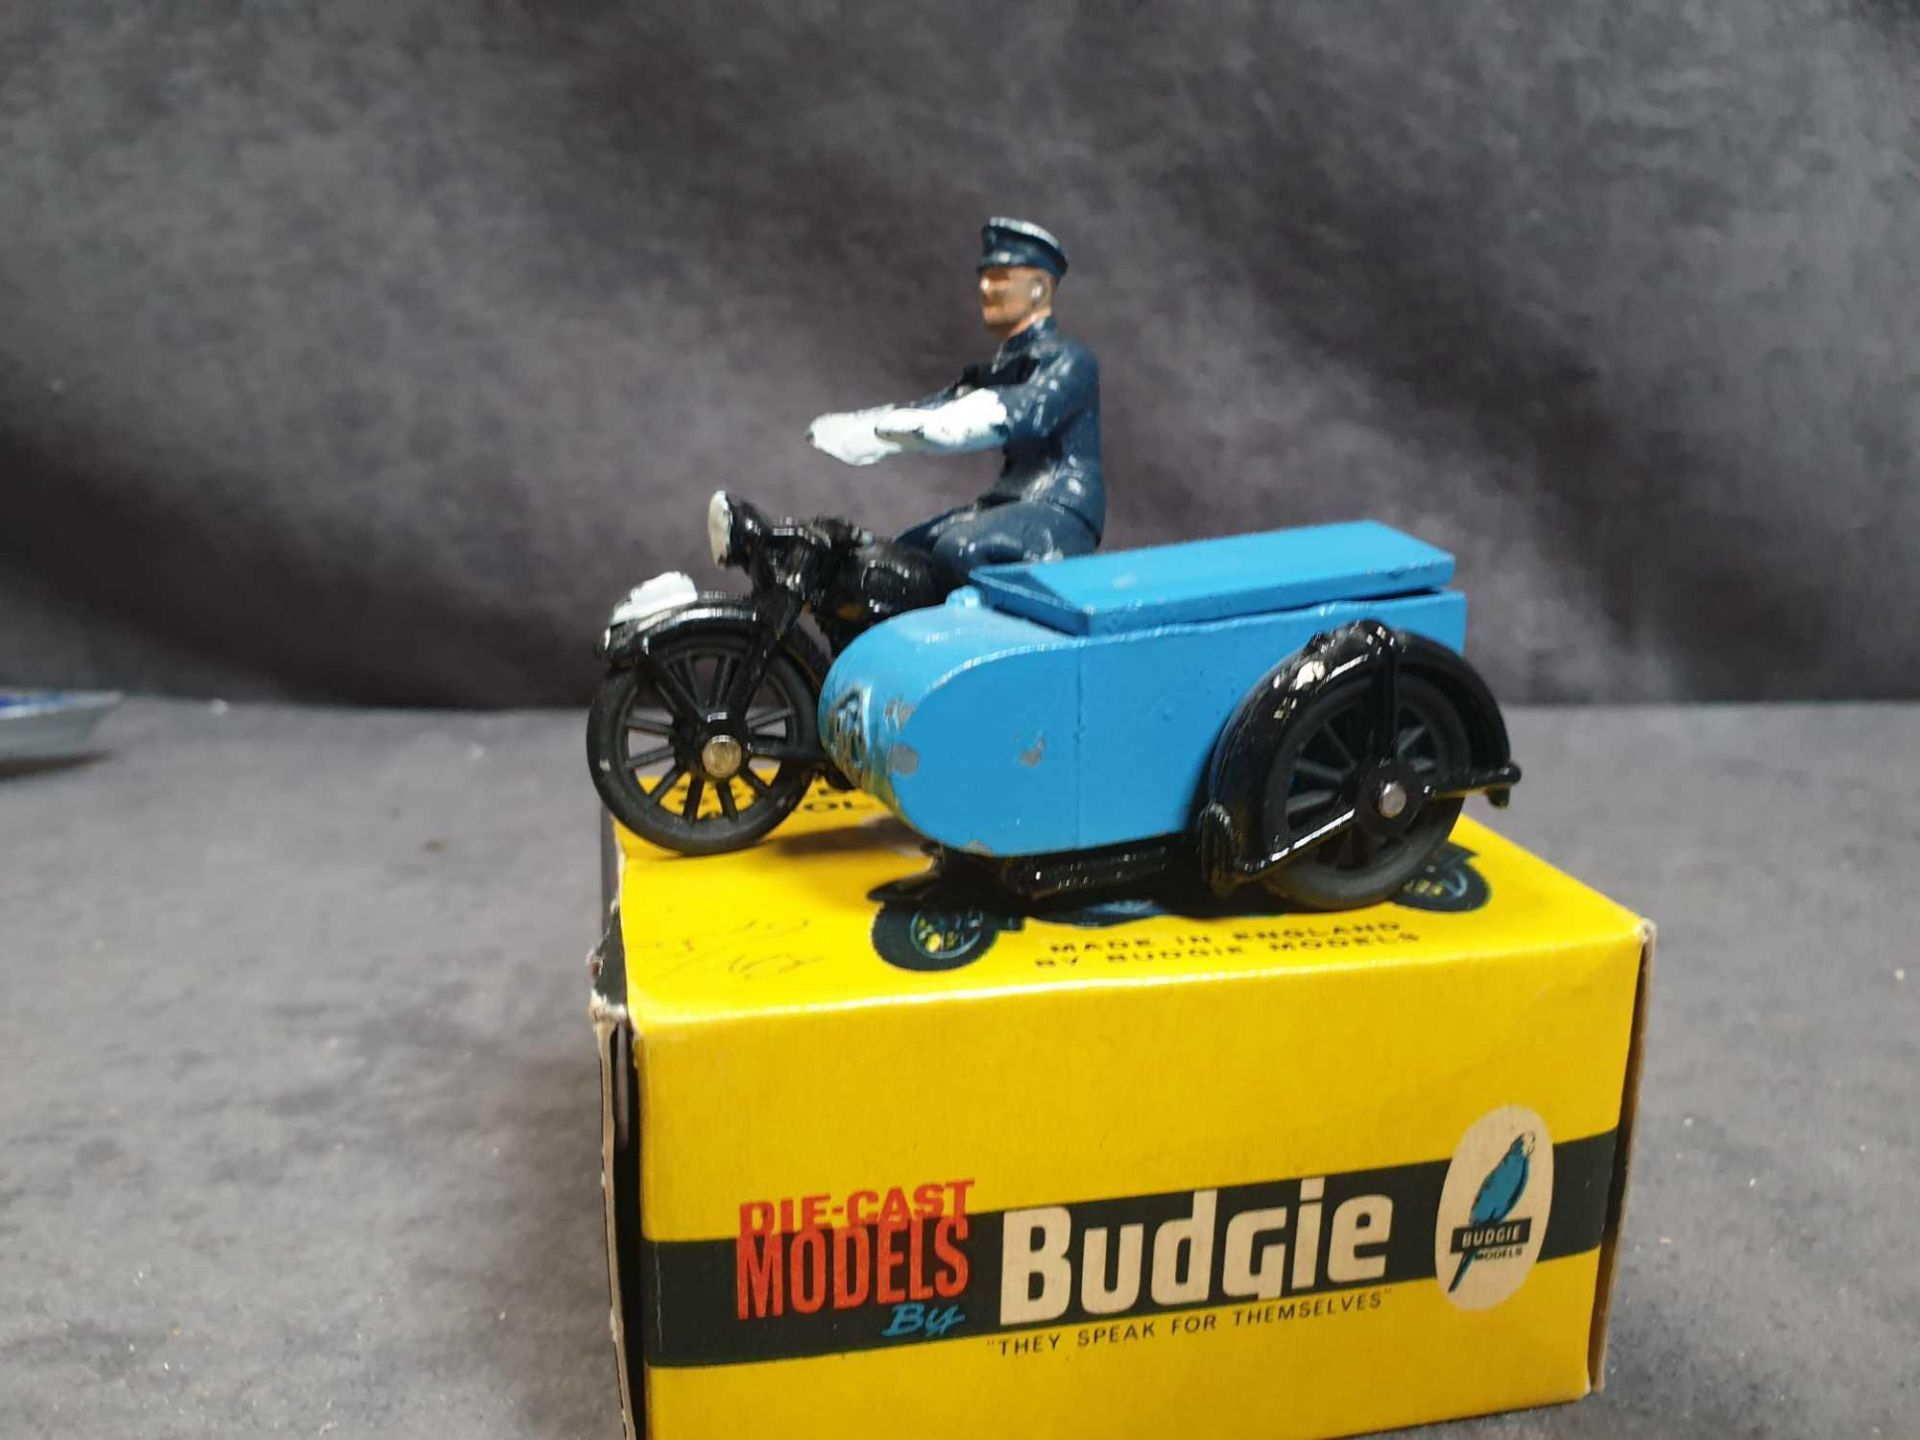 Virtually Mint Budgie Toys England #454 RAC Motorcycle Patrol Diecast;In Excellent Firm Box (Tiny